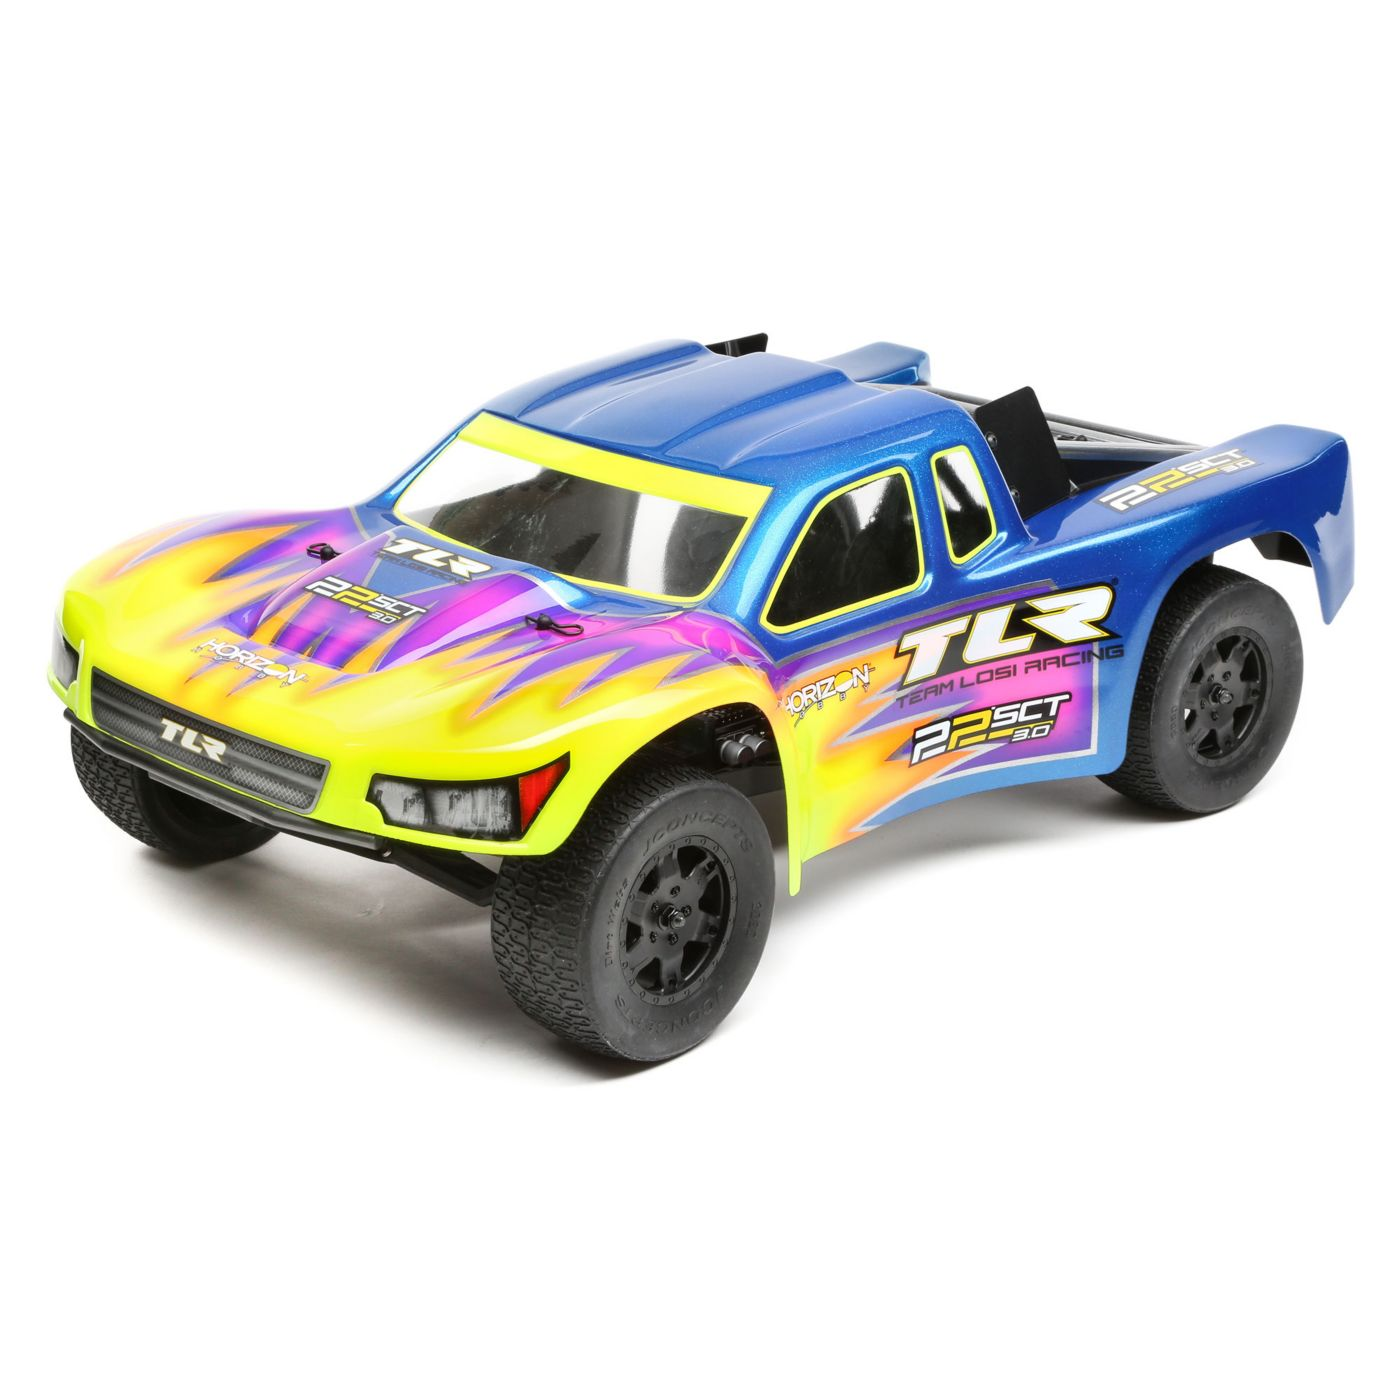 Team Losi Racing 22SCT 3.0 Off-road R/C Racer